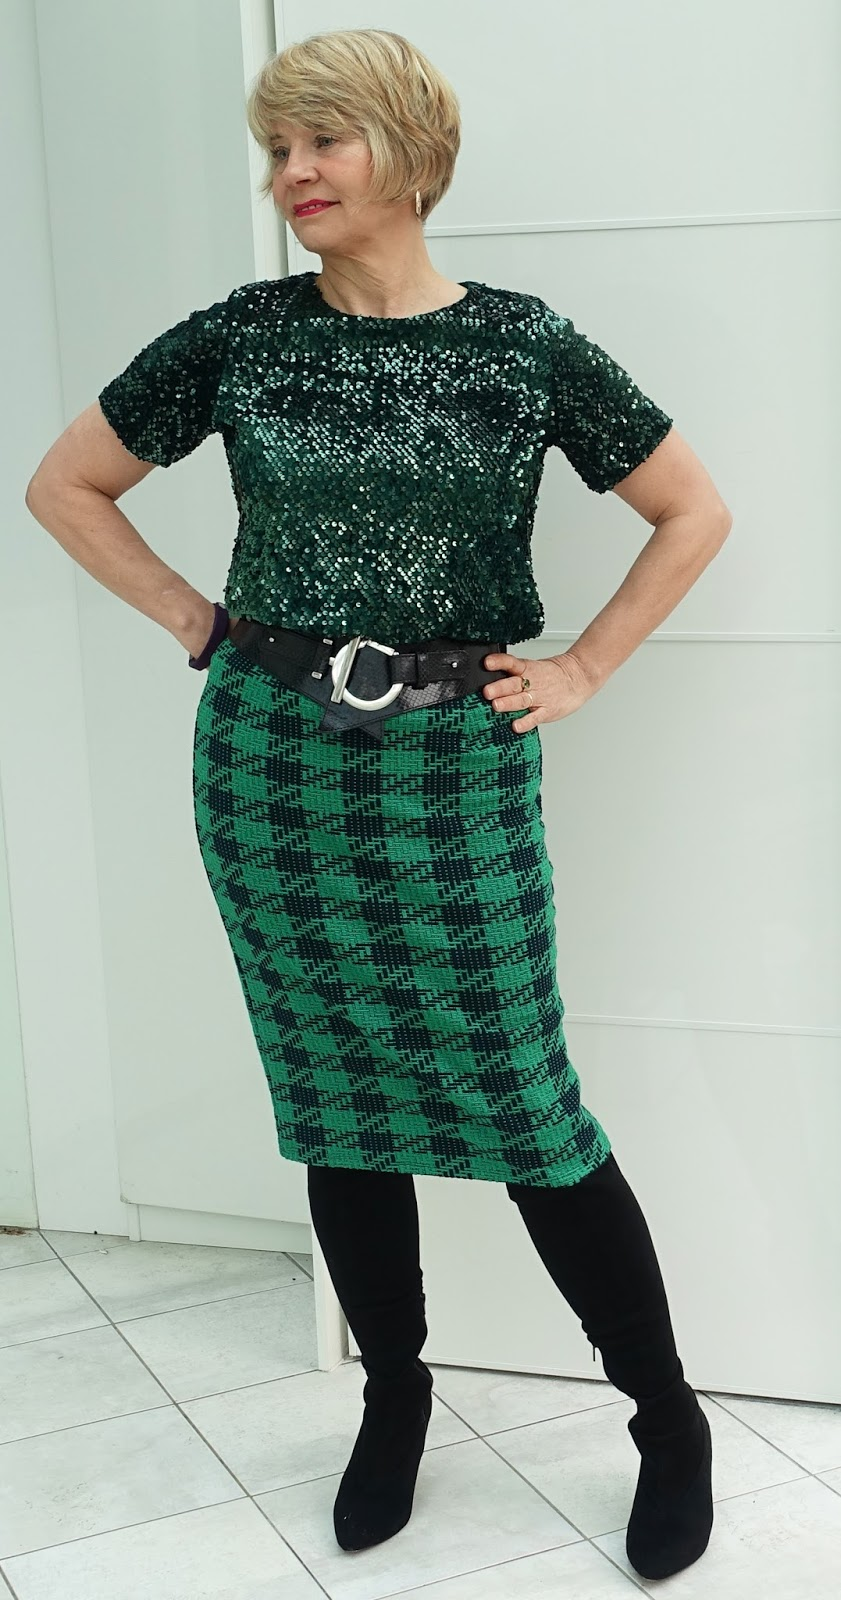 Image showing over 45s fashion blogger Gail Hanlon wearing green sequin top with work attire